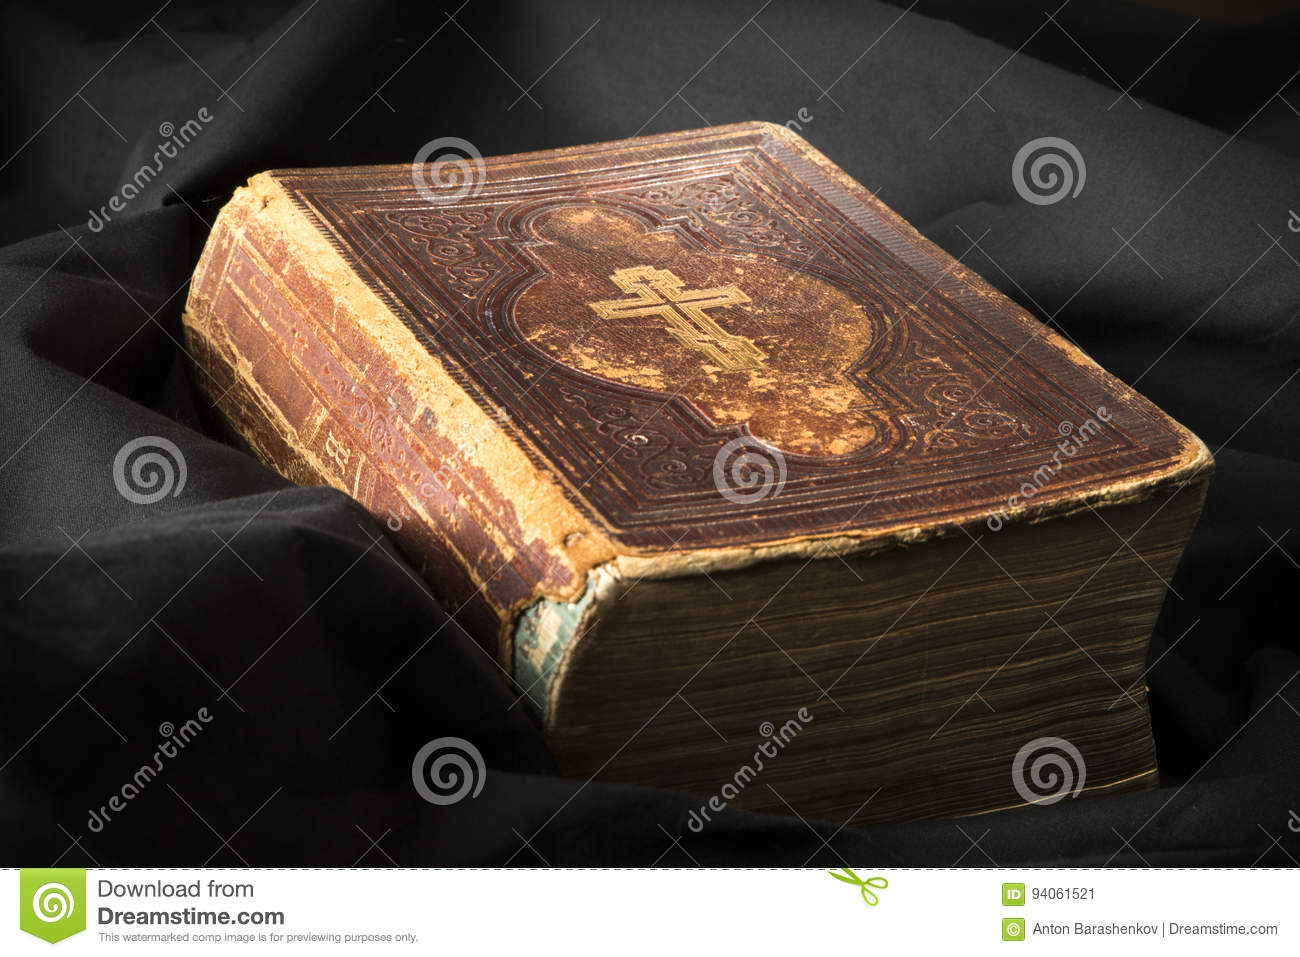 Vintage Leather Look Jeremiah Verse Bible Book Cover Large: Old Book On Black Background. Ancient Christian Bible